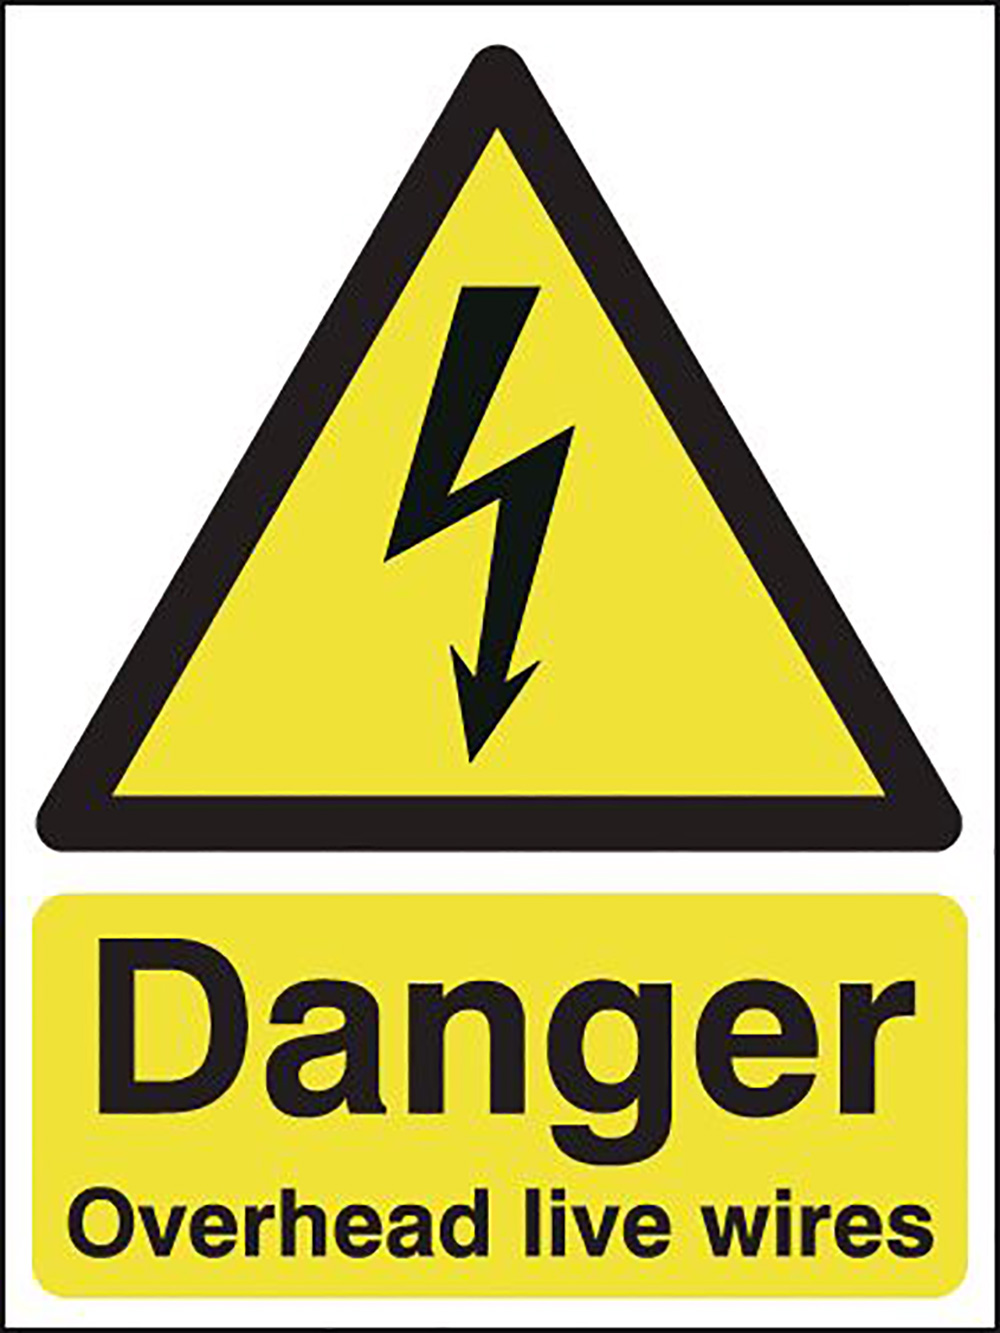 Danger Overhead Live Wires   297x210mm 1.2mm Rigid Plastic Safety Sign